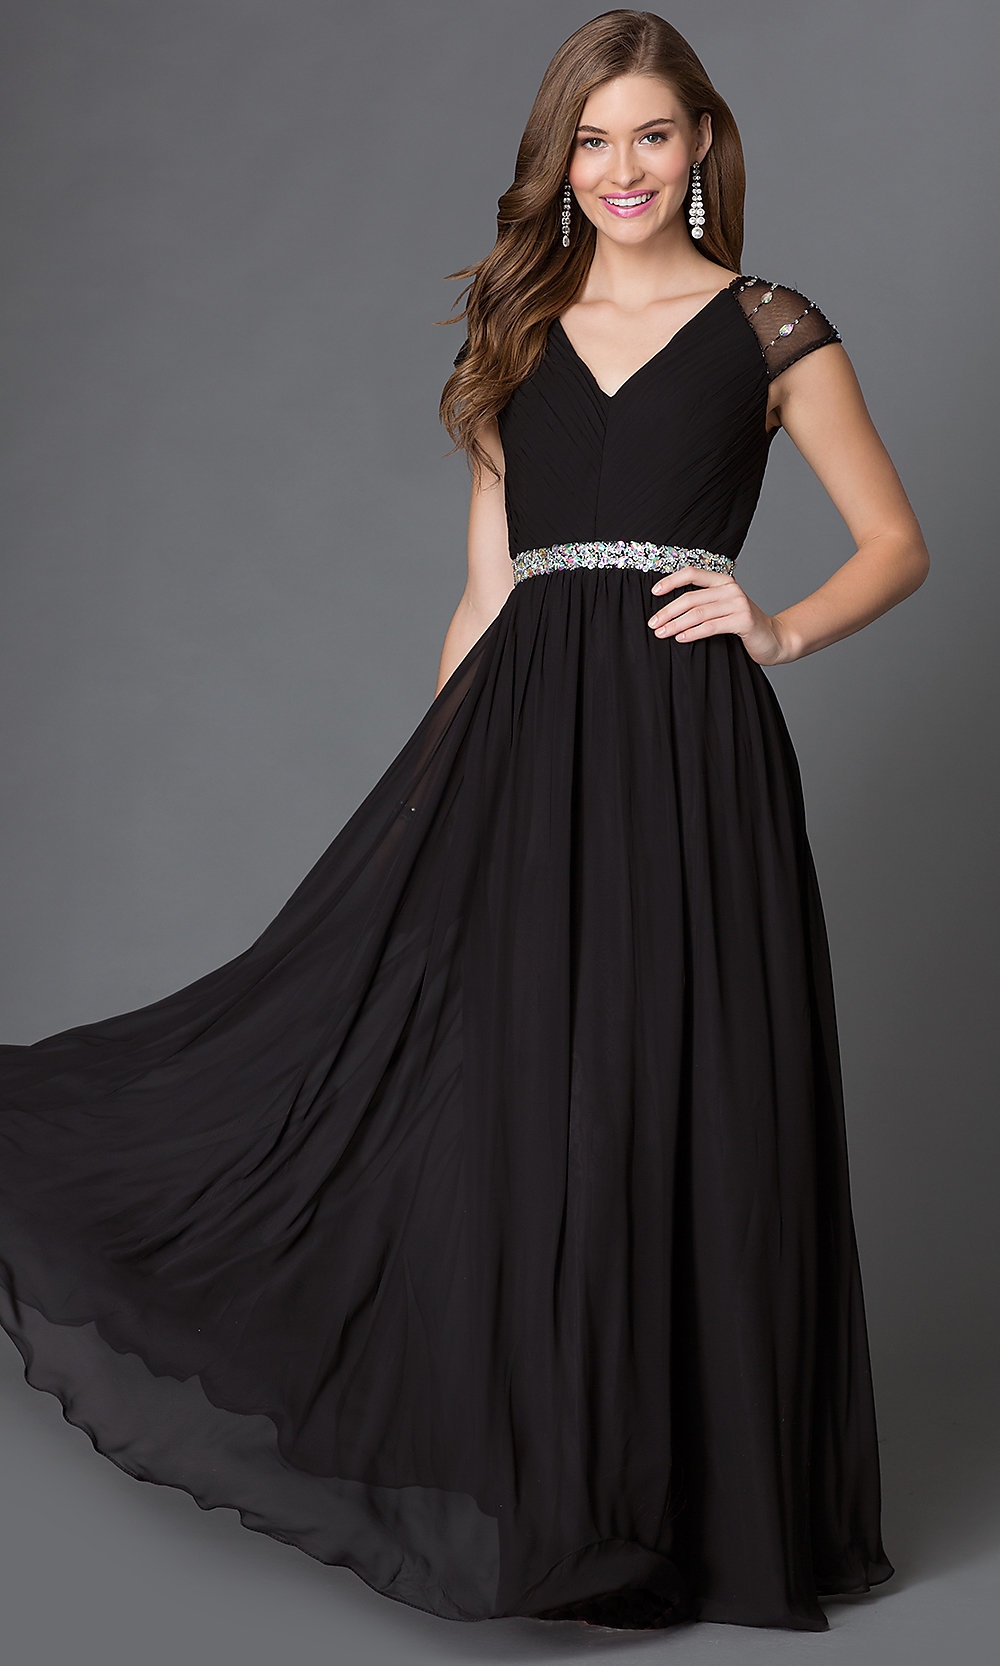 Long V-Neck Prom Dress with Cap Sleeves - PromGirl